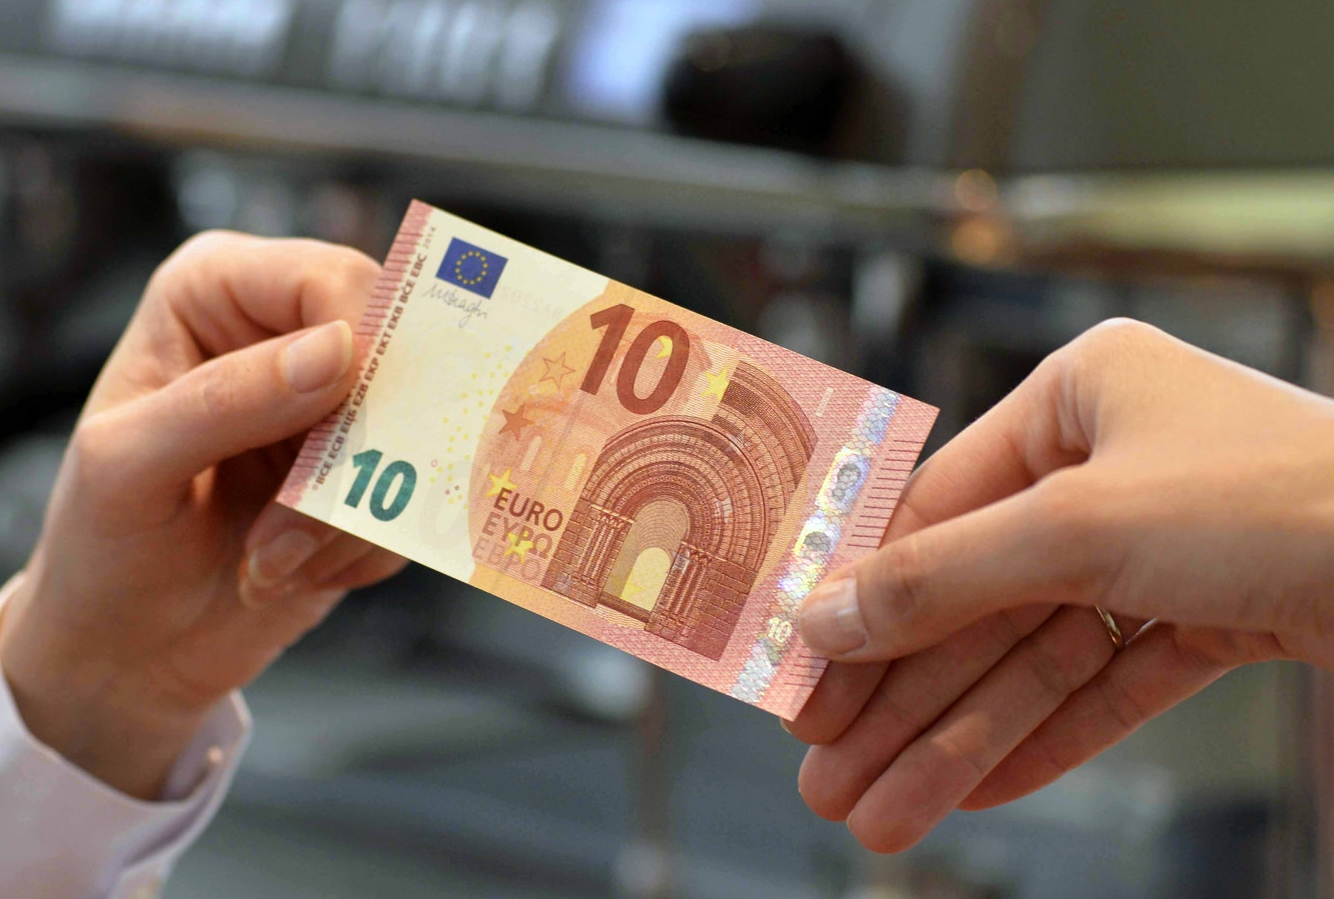 New 10 euro banknote goes into circulation on September 23 | The Sofia Globe